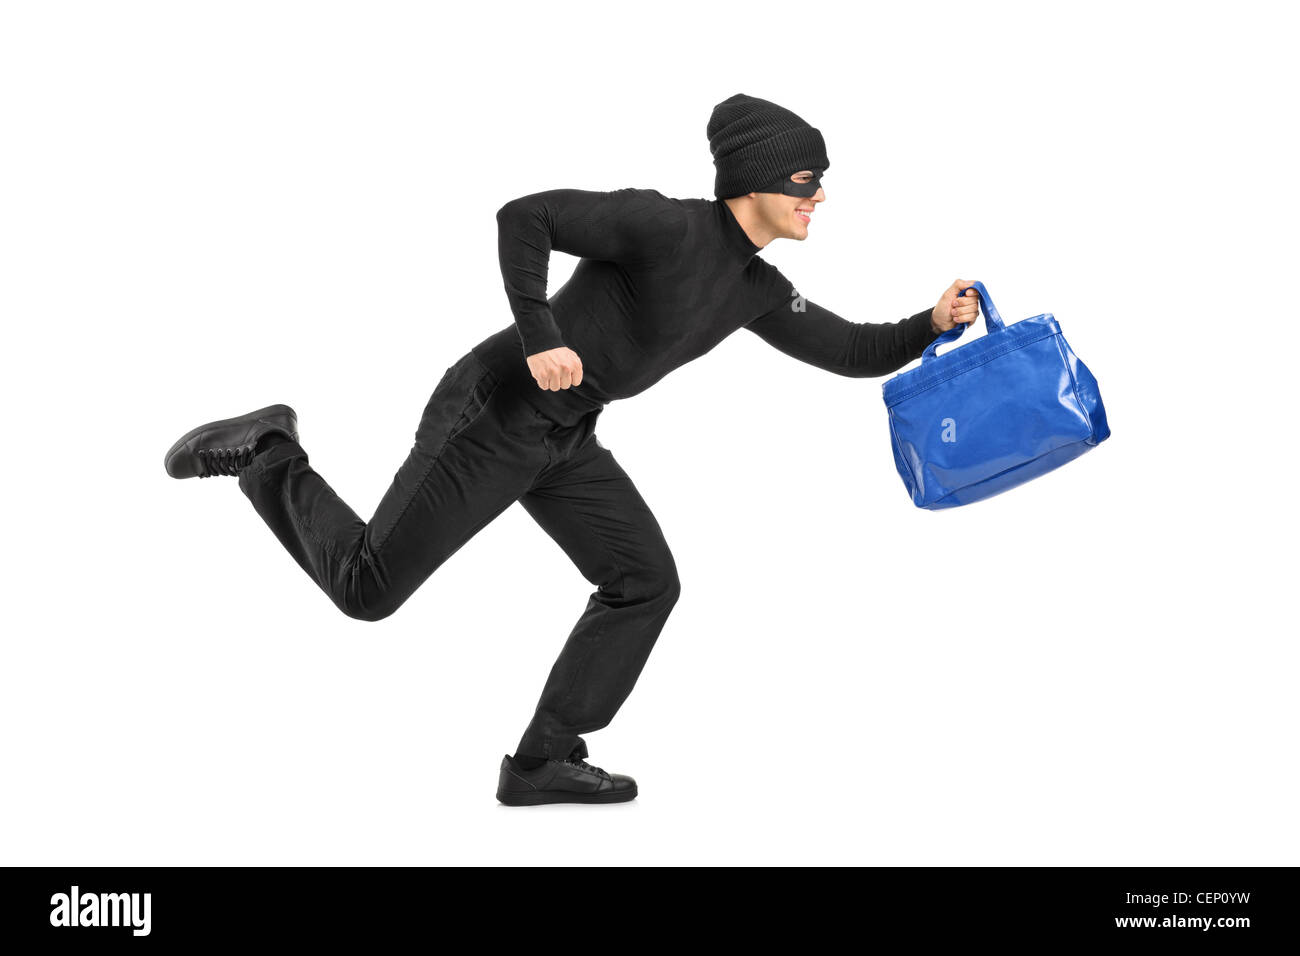 Full length portrait of a thief running with a stolen purse isolated on white background - Stock Image